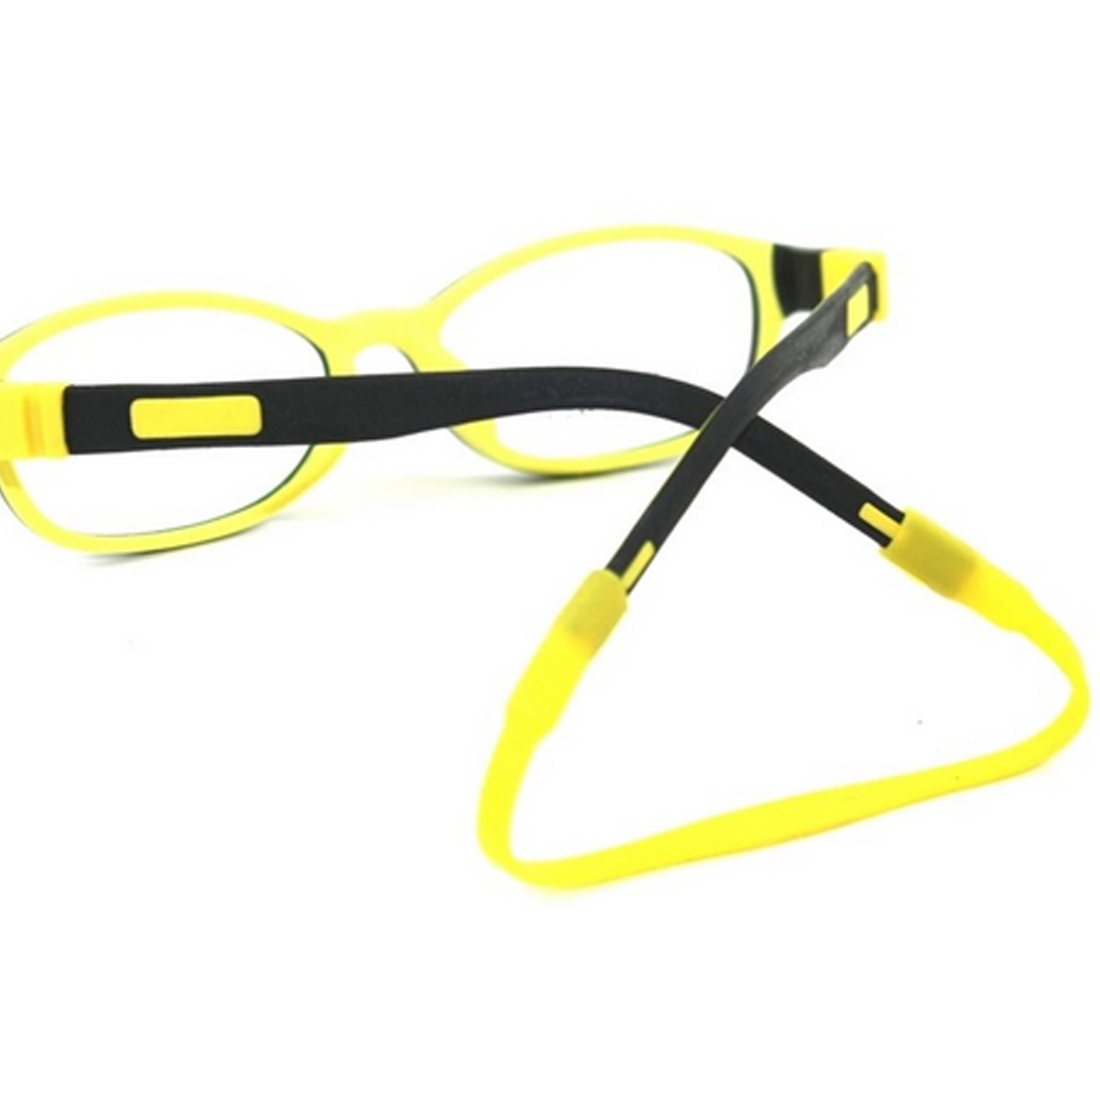 New Elegent Eyeglasses Cord Silicone Head Band Strap Cord Glasses Safety Band Strap Retainer Sports Holder Chain